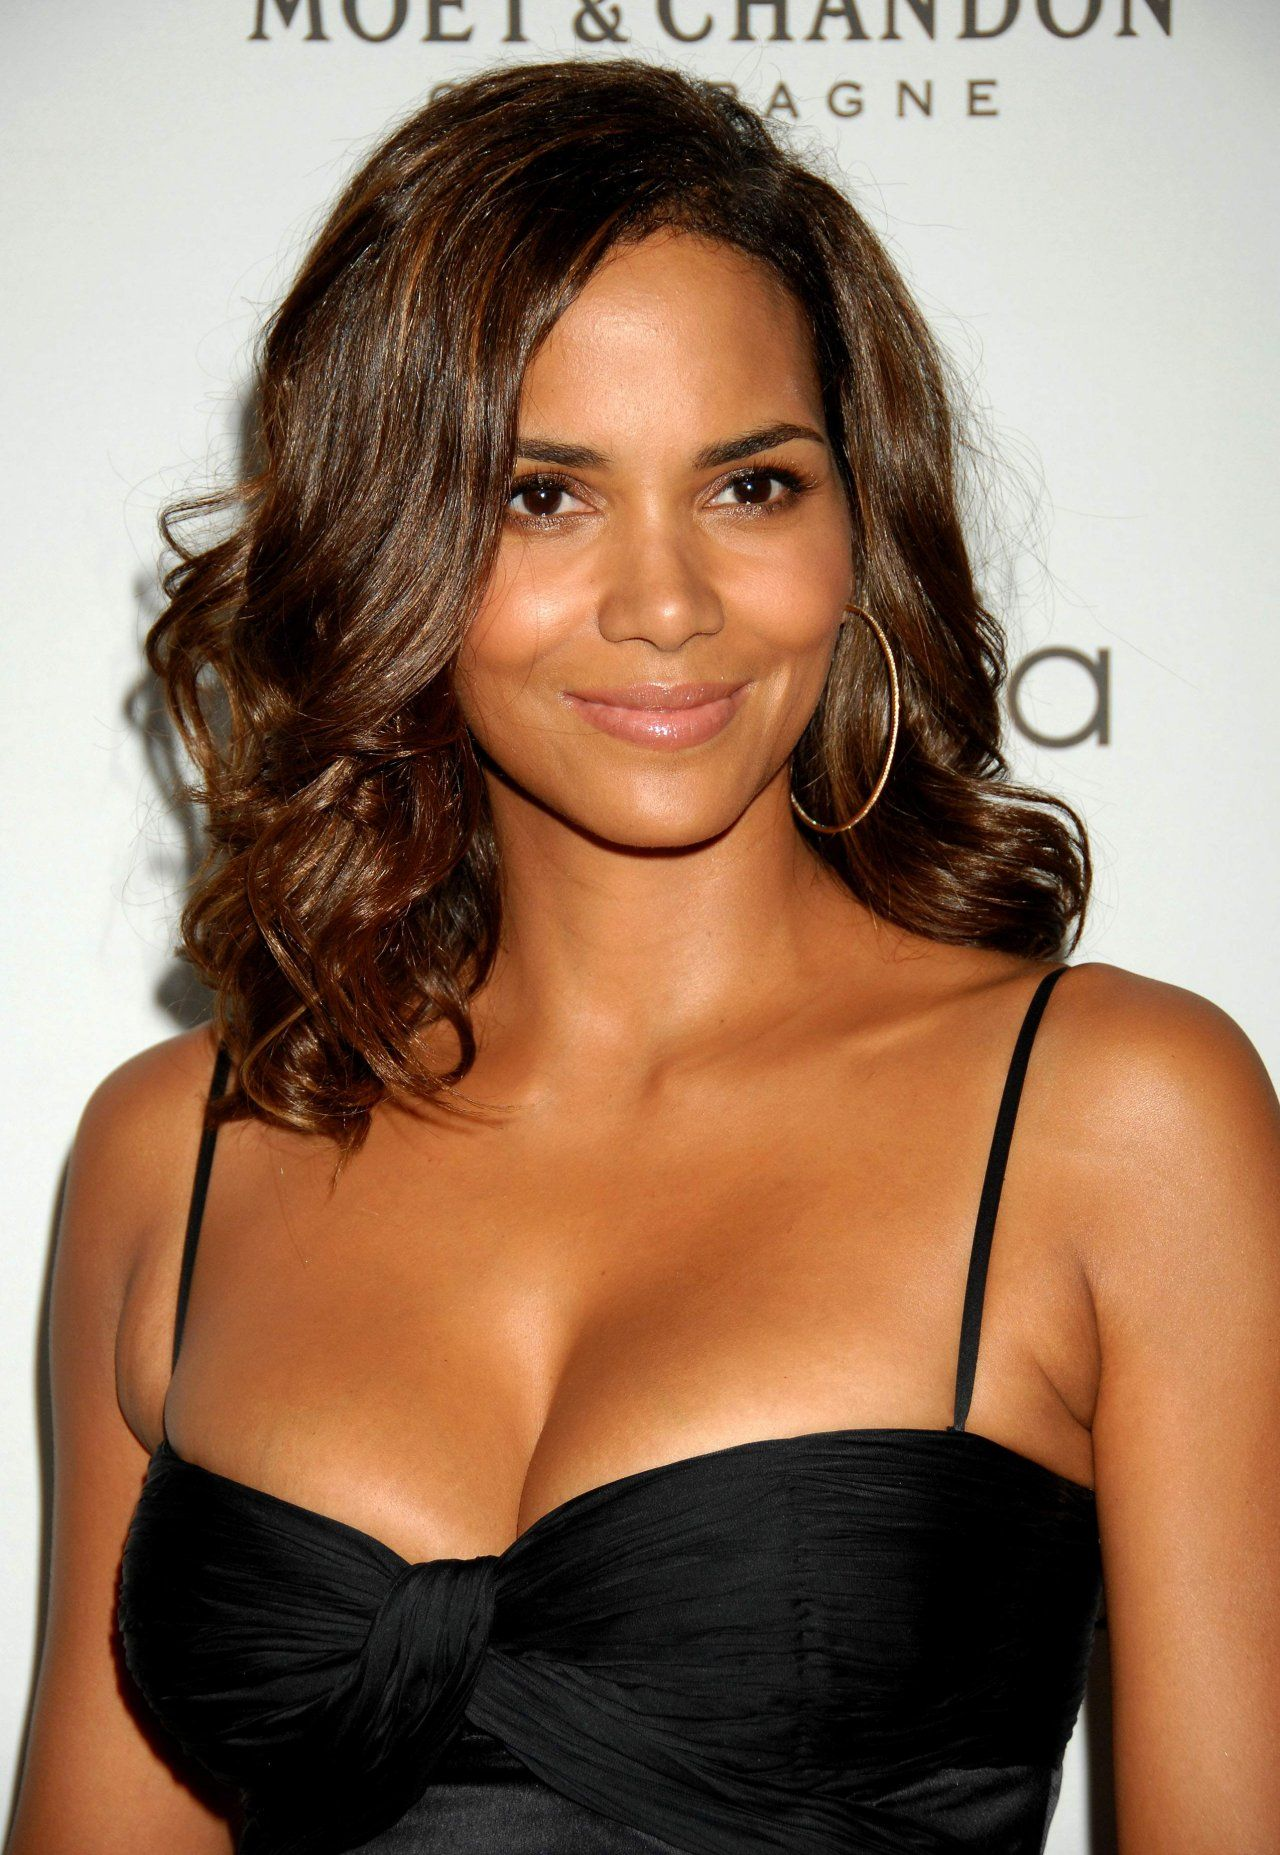 Best 25+ Halle berry movies ideas on Pinterest | Halle ... Halle Berry